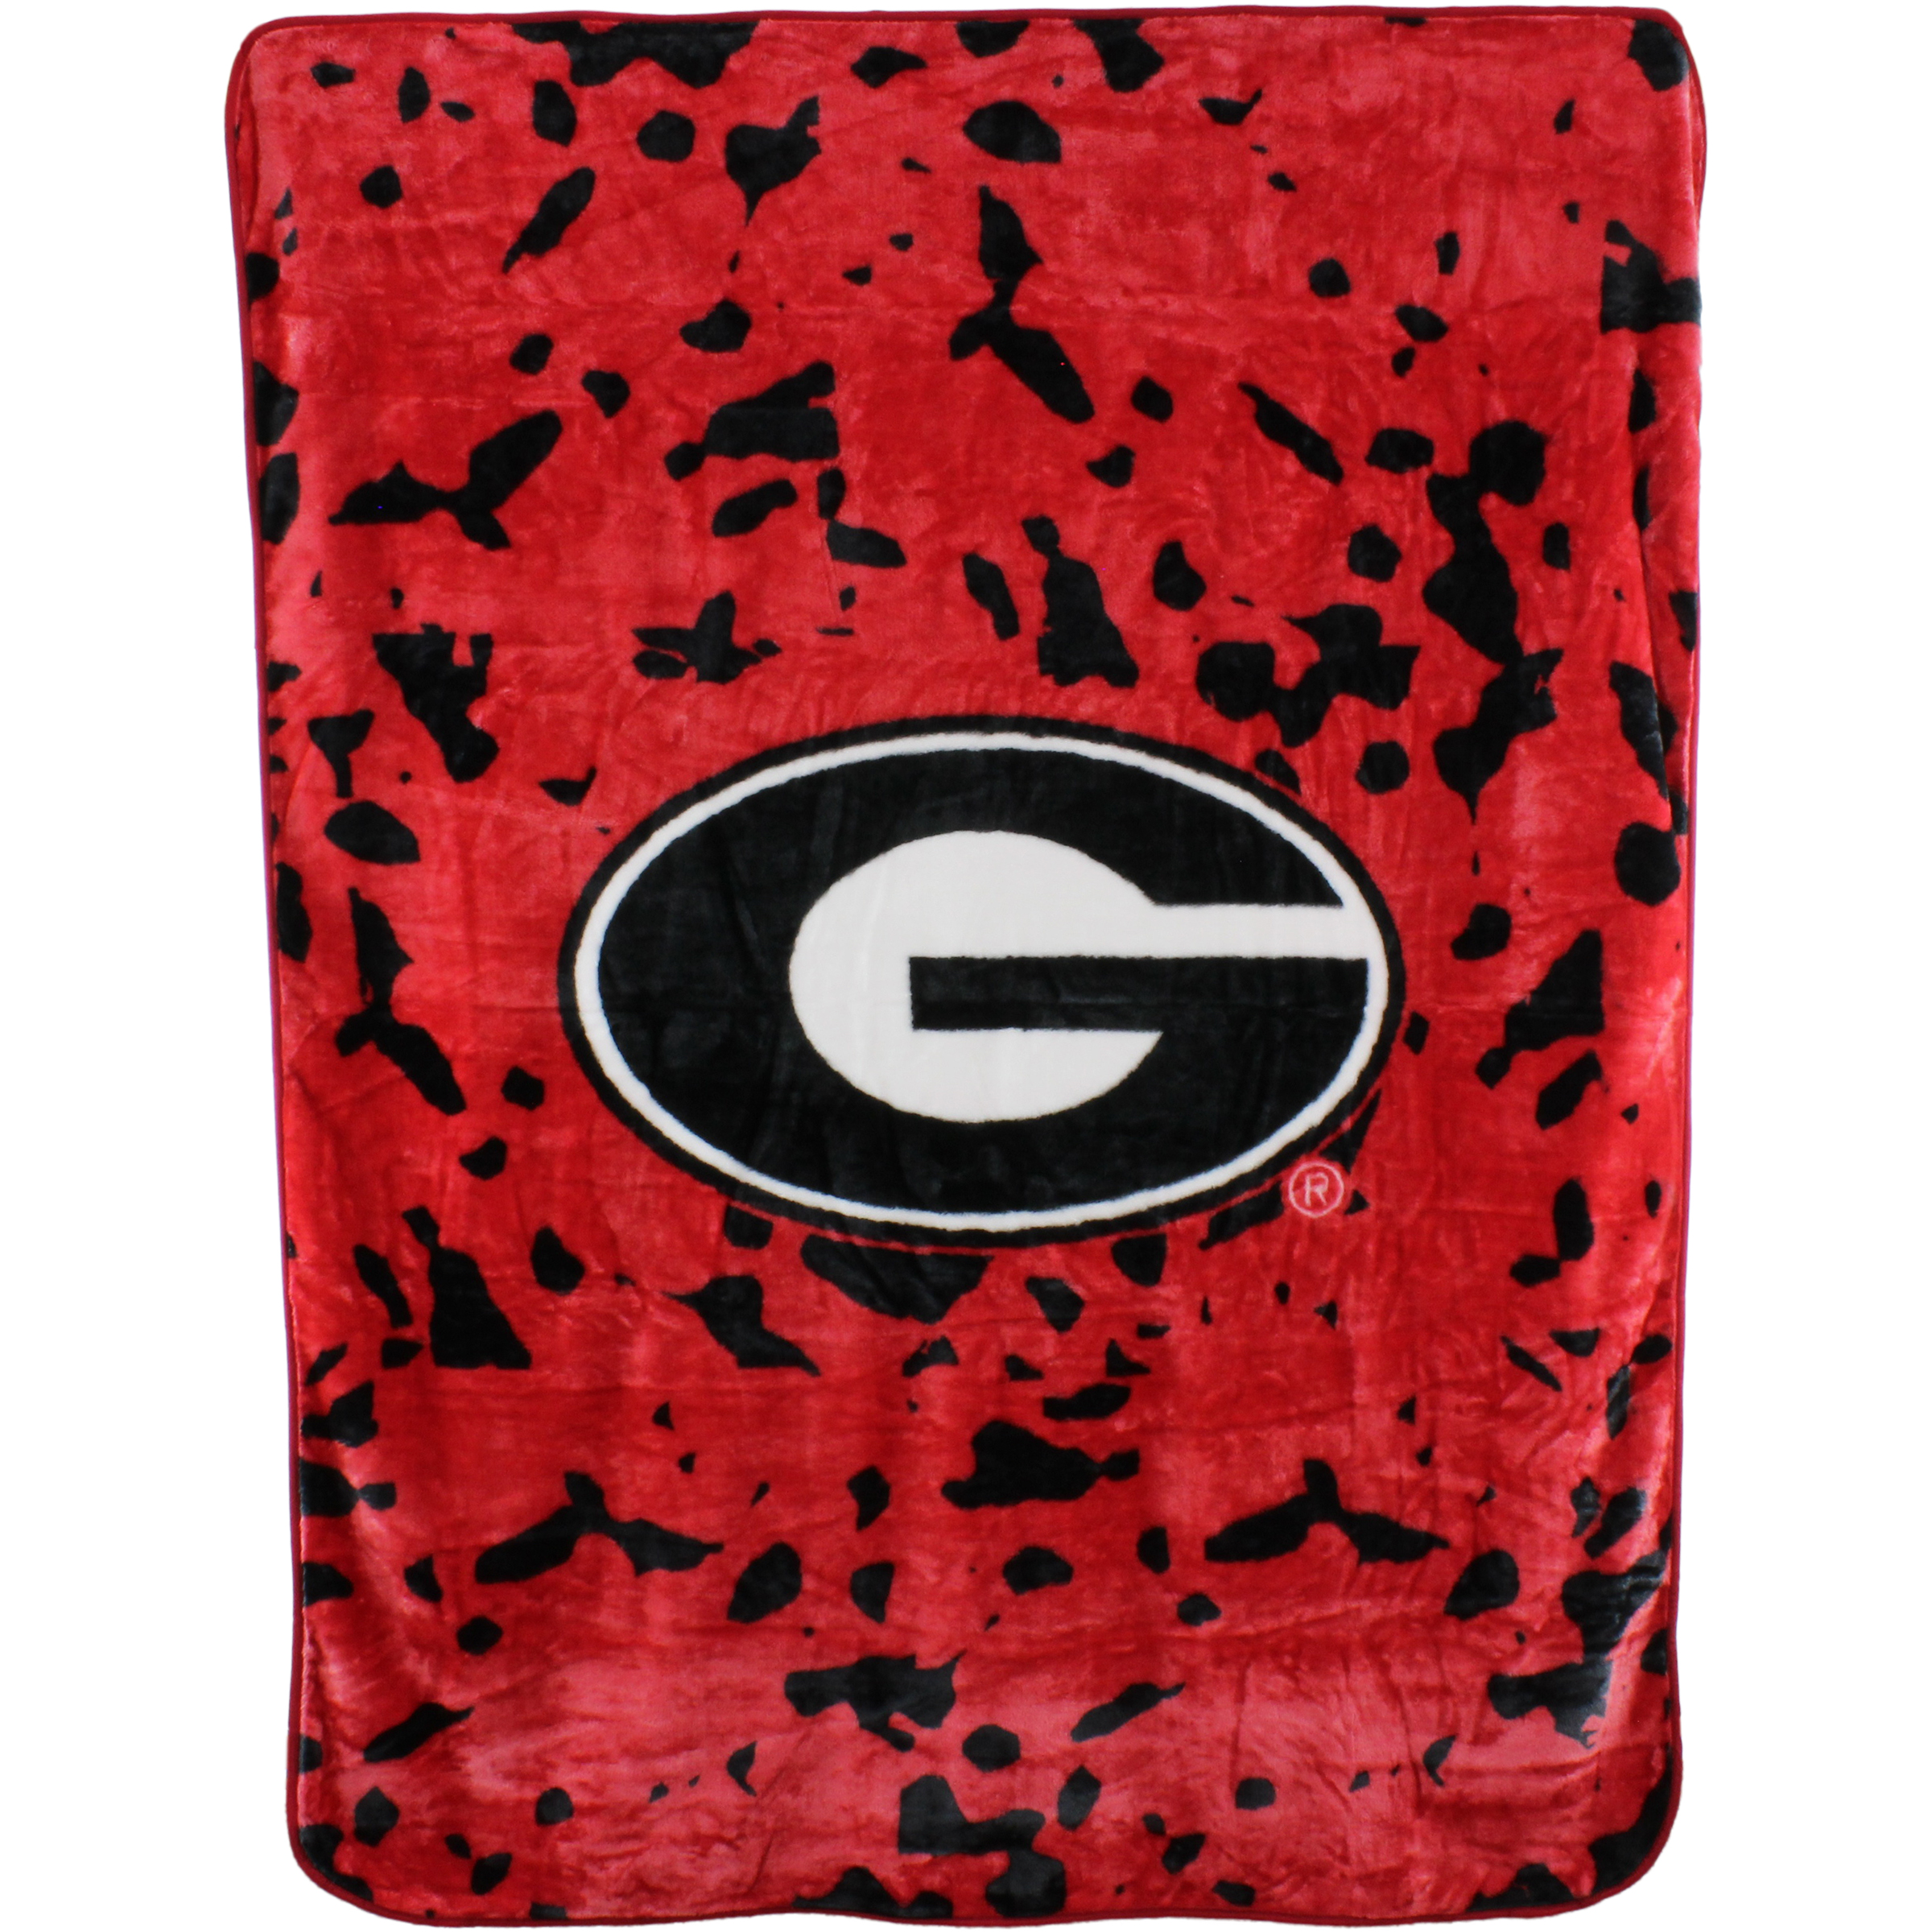 College Covers NCAA Georgia Bulldogs Raschel Plush Throw Blanket